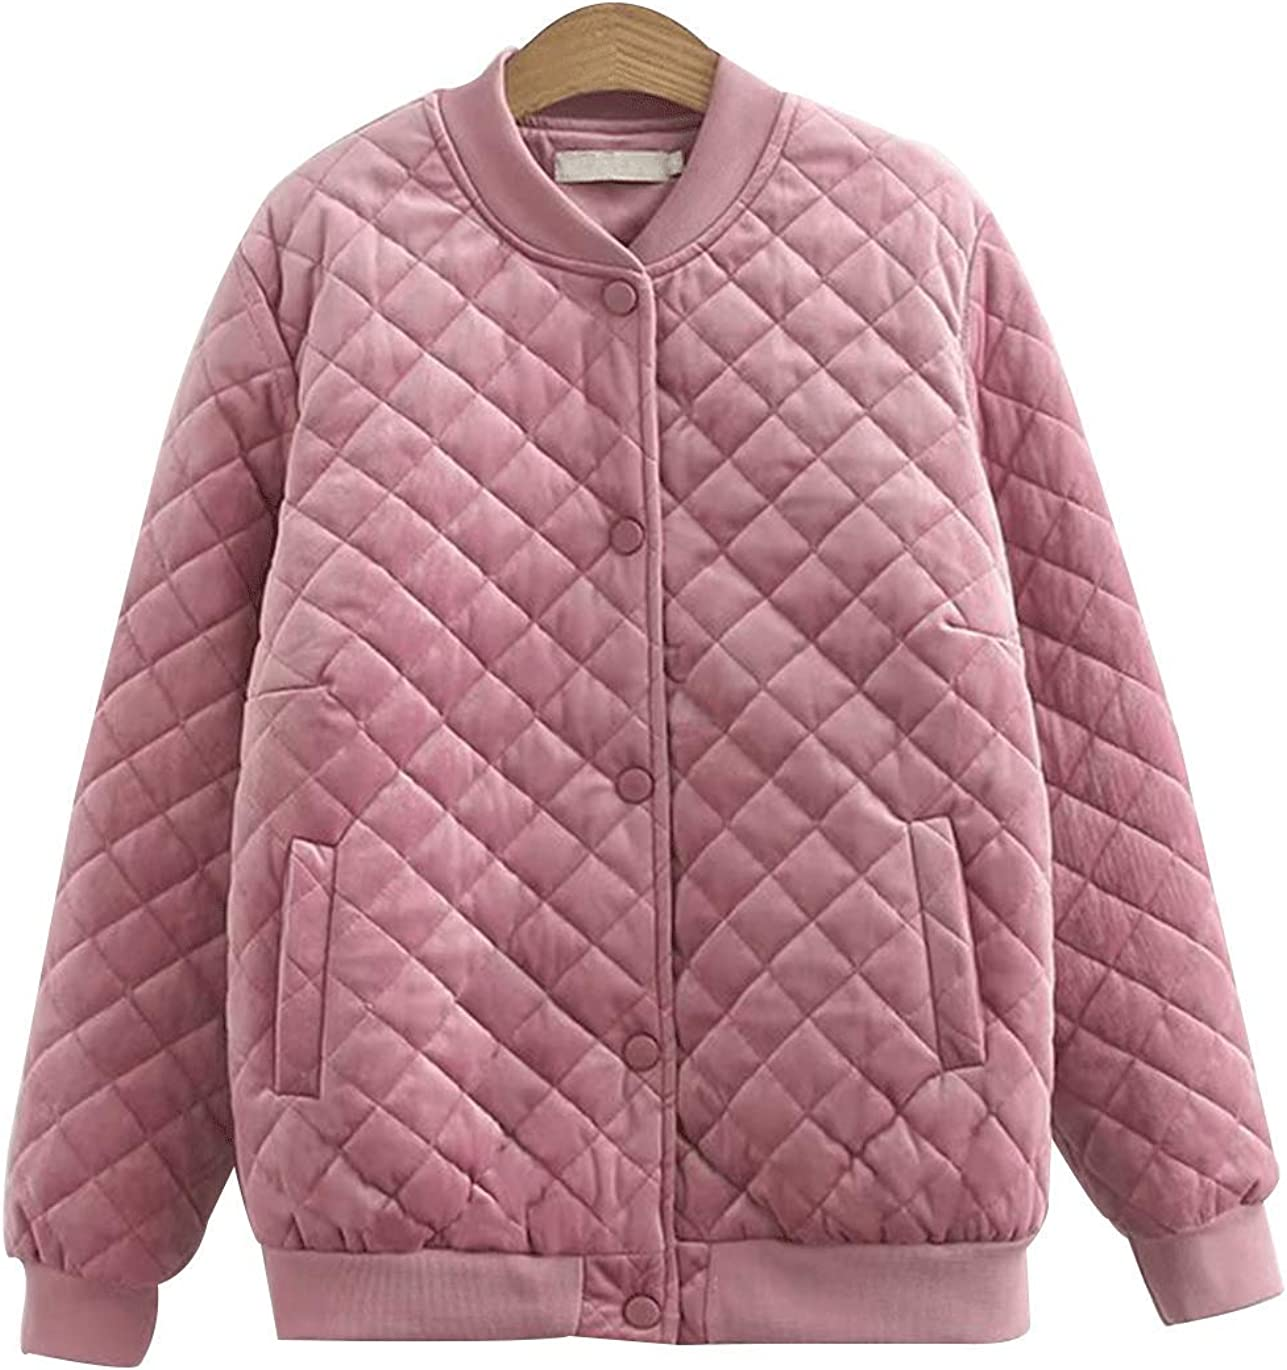 Haellun Women's Quilted Padded Jacket Coat Classic Plus Size Button Up Outerwear